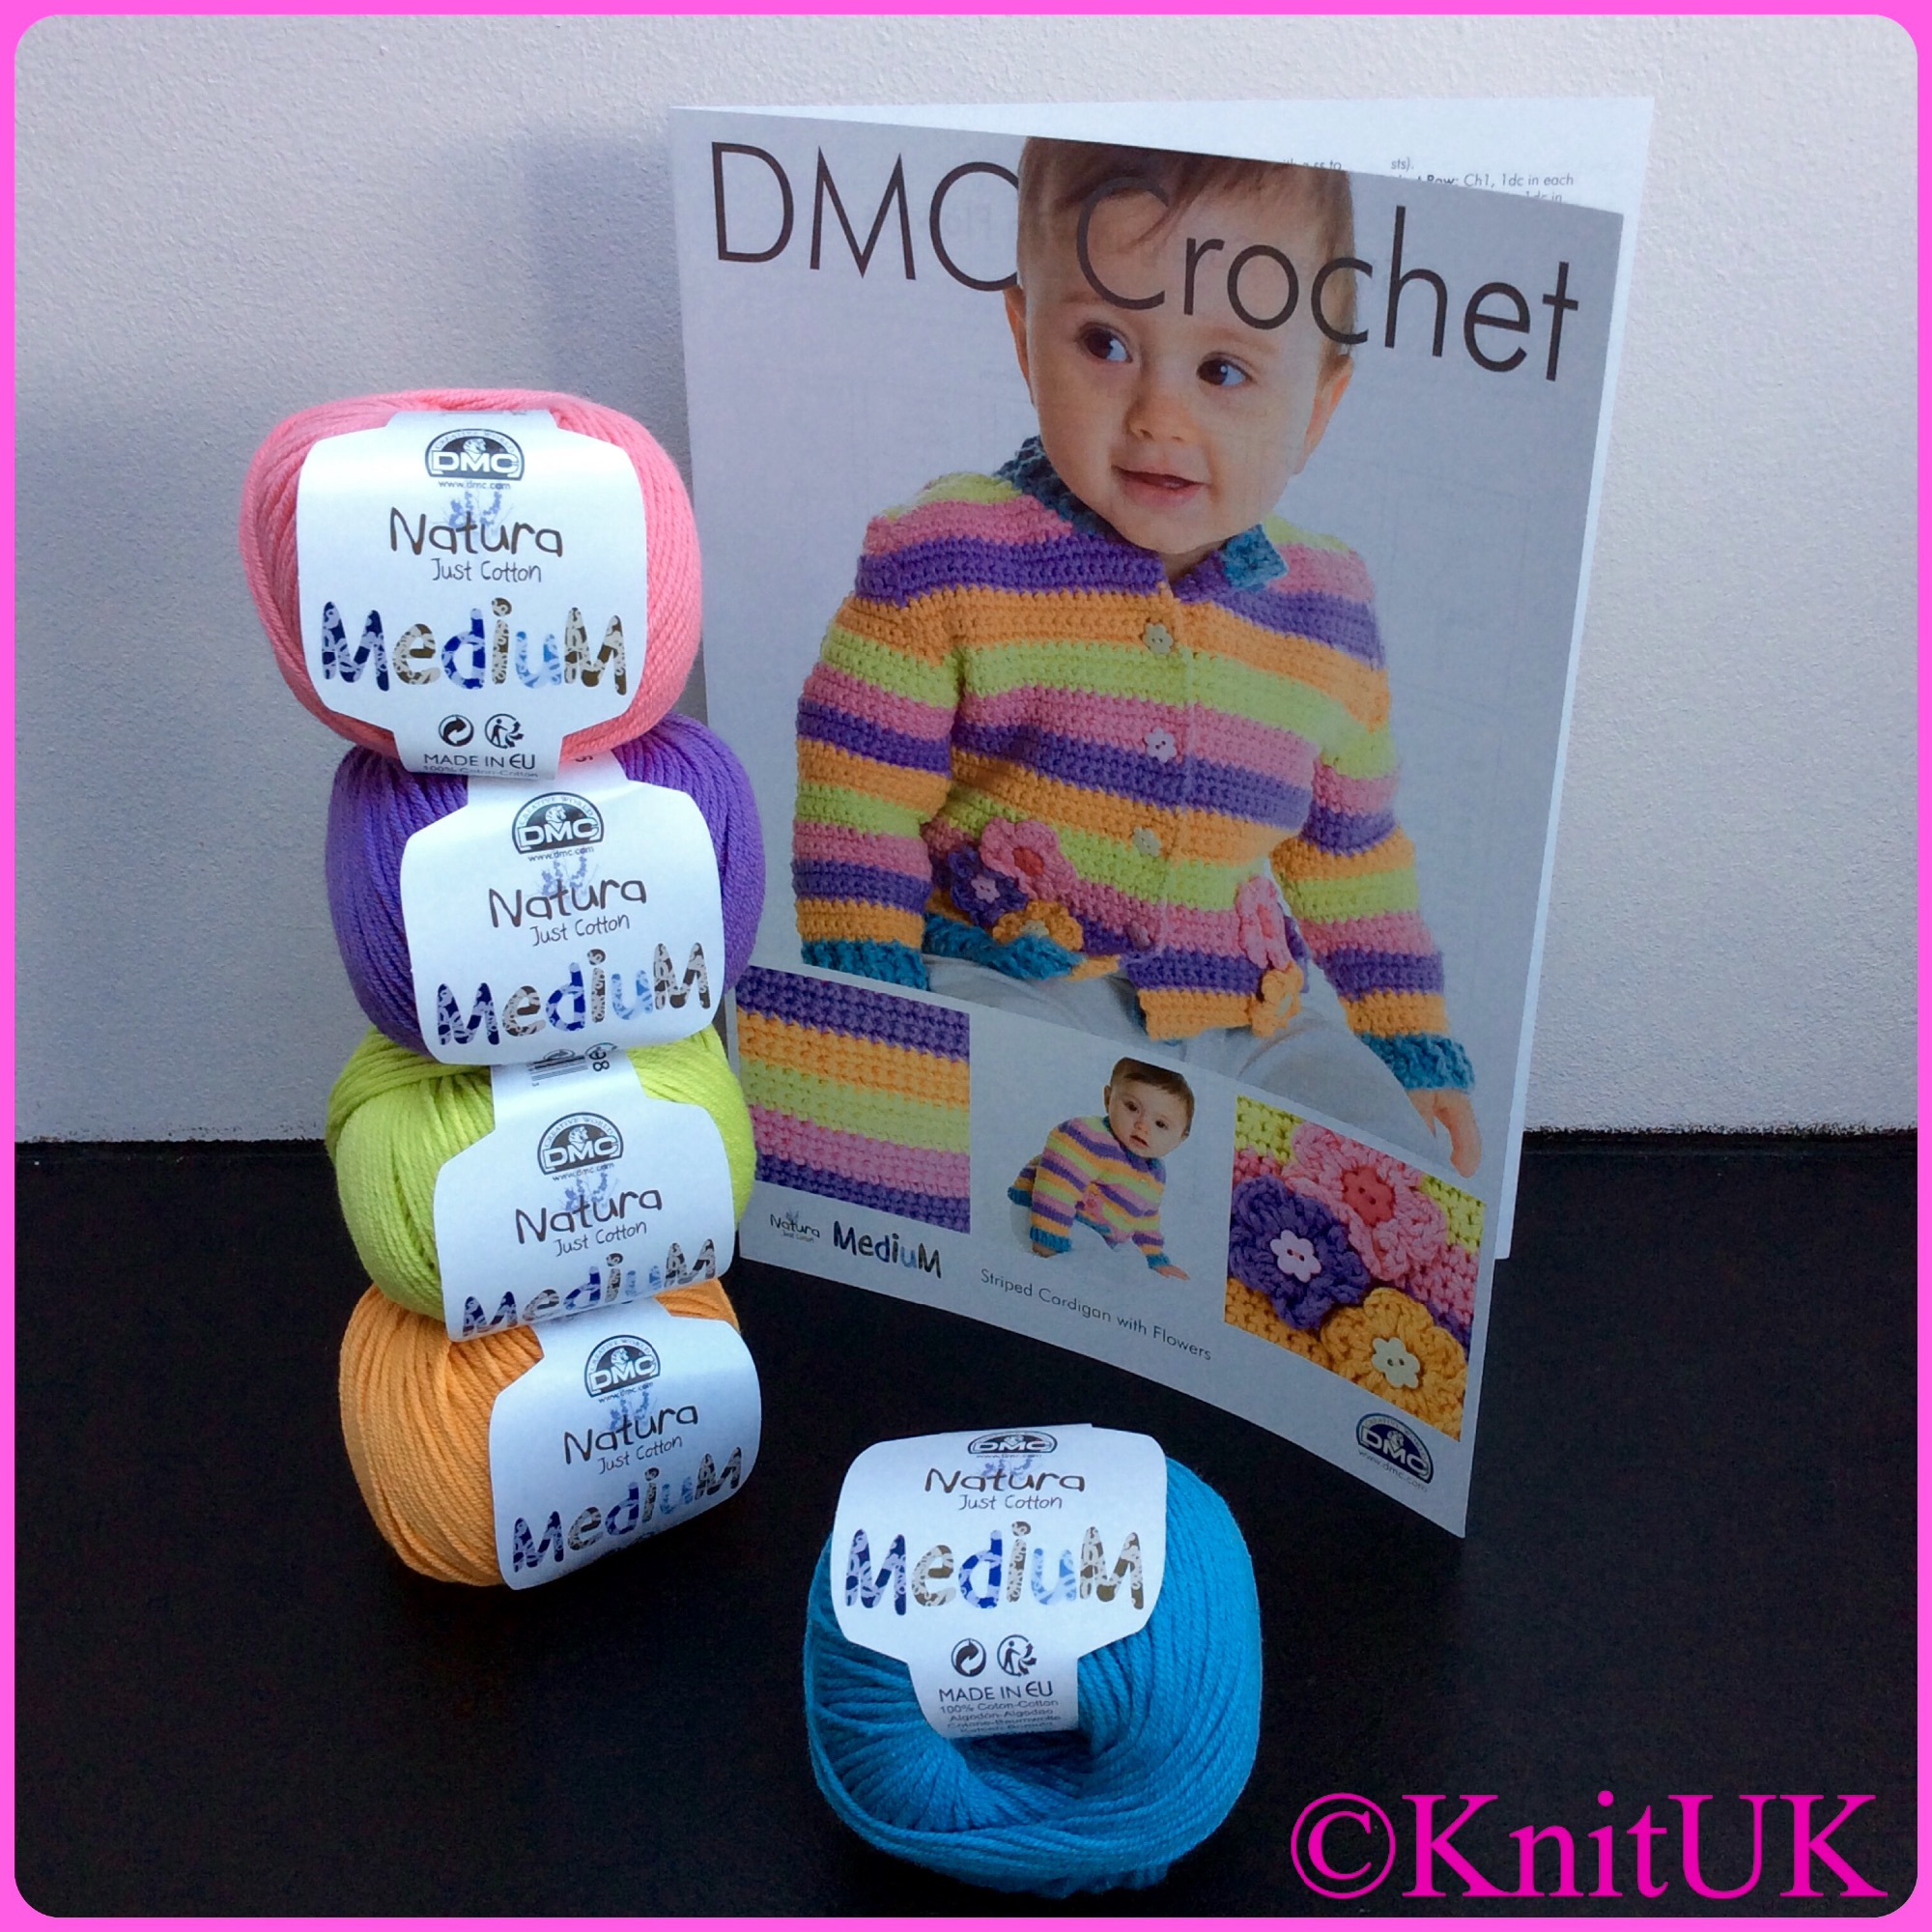 DMC crochet striped cardigan with flowers and natura medium yarn